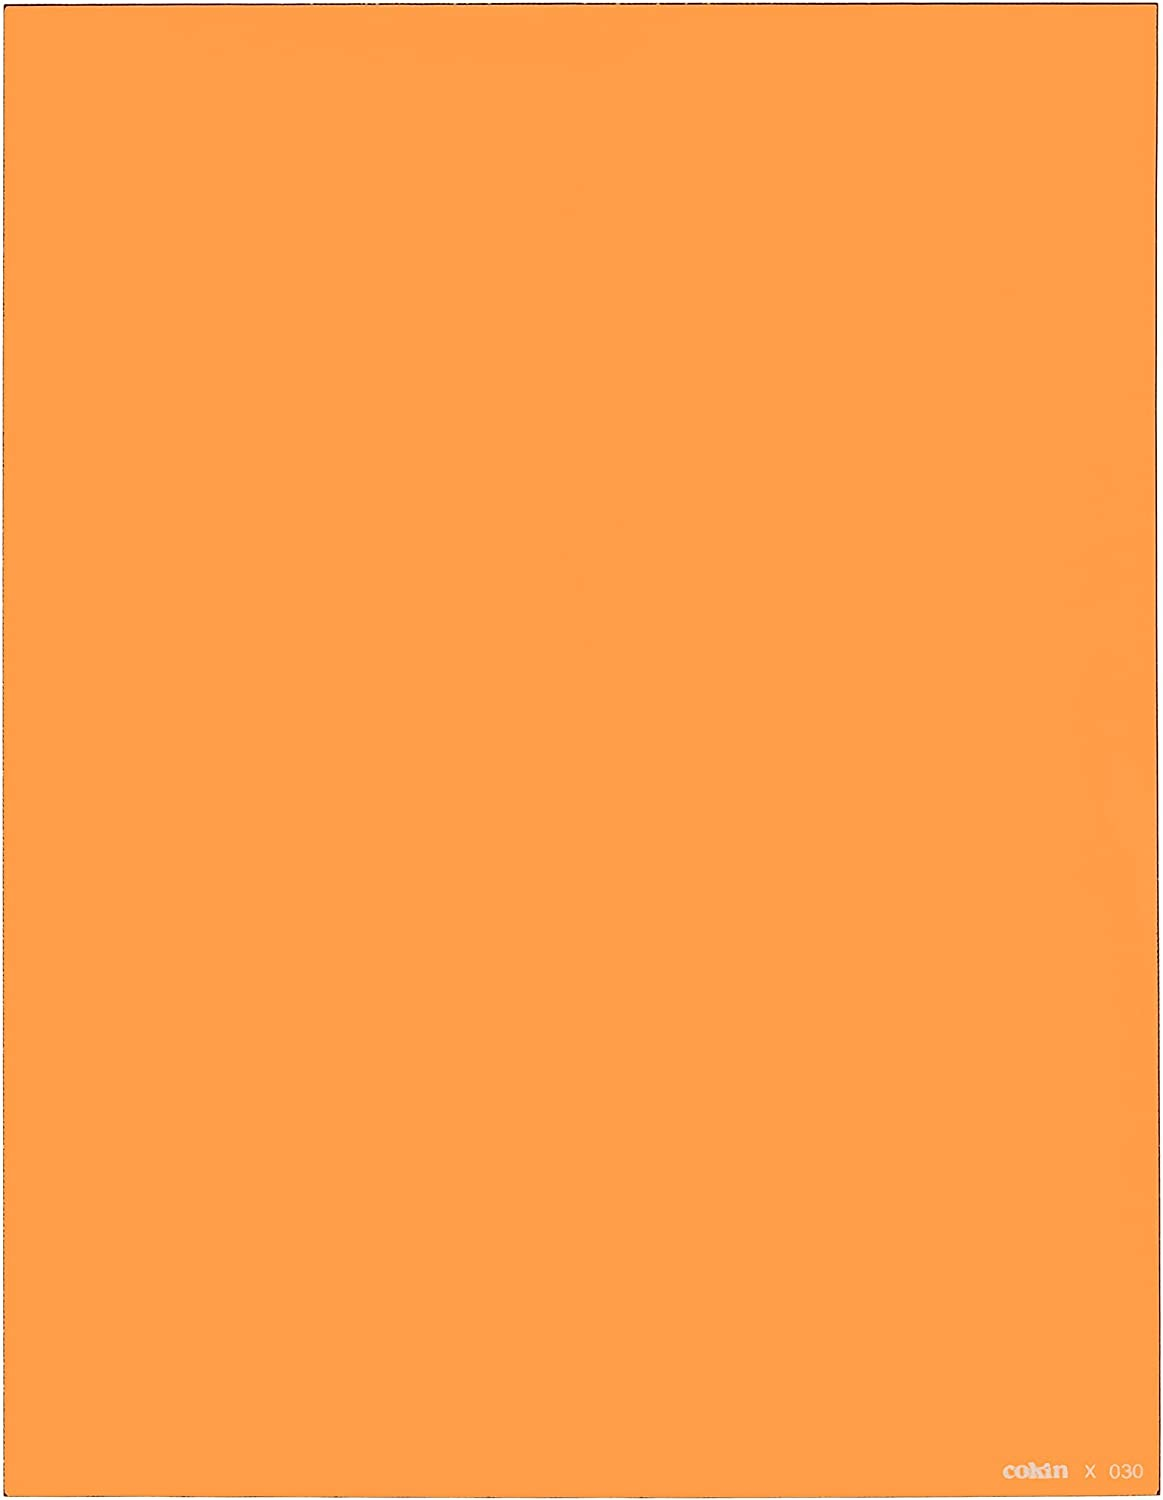 130mm X 130mm - 2//3-Stop for XL X030 Series Holder Cokin Square Orange 85B X